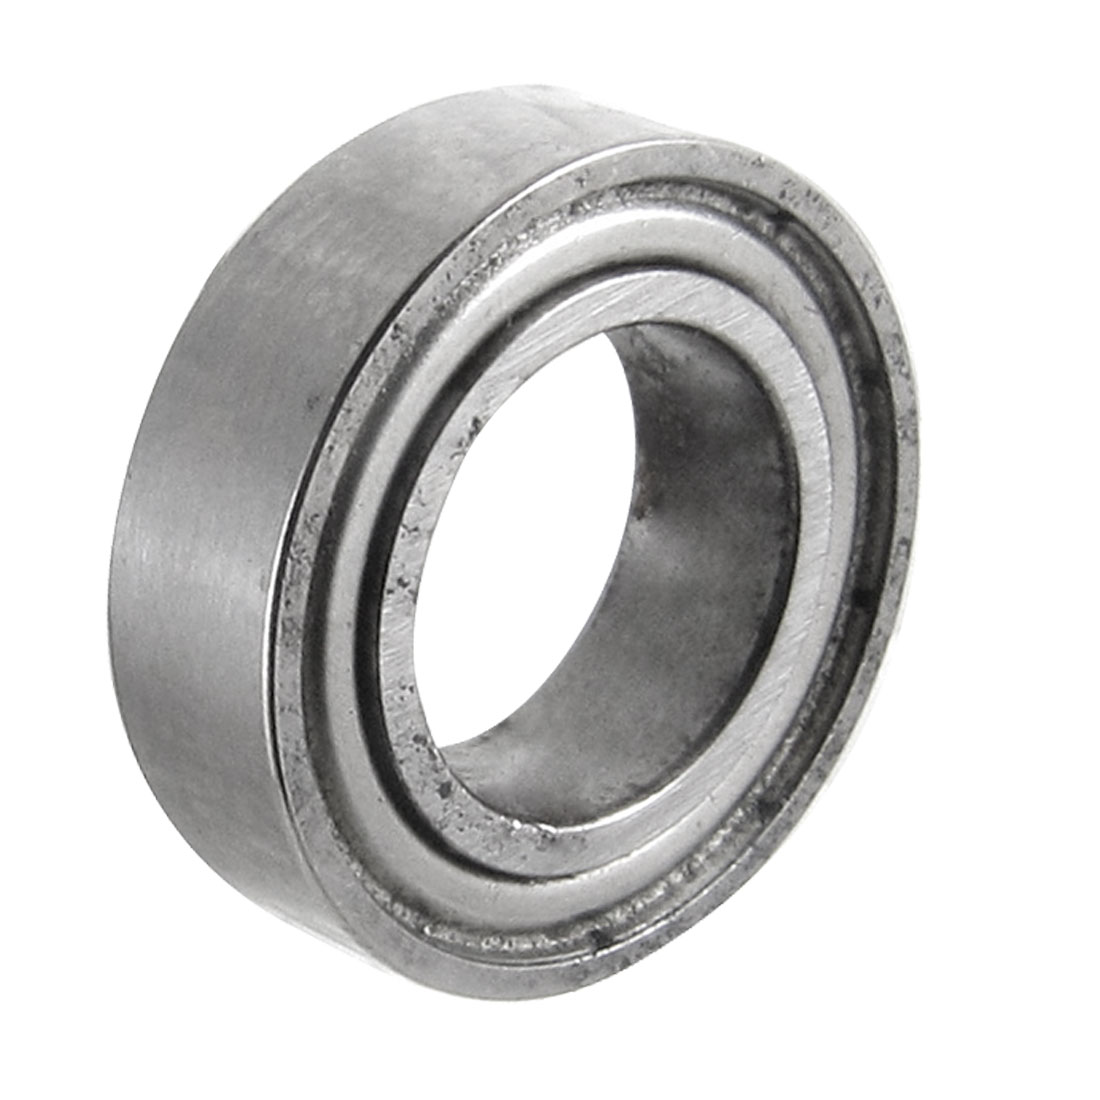 8mm x 14mm x 4mm Shielded Deep Groove Radial Ball Bearing Silver Tone